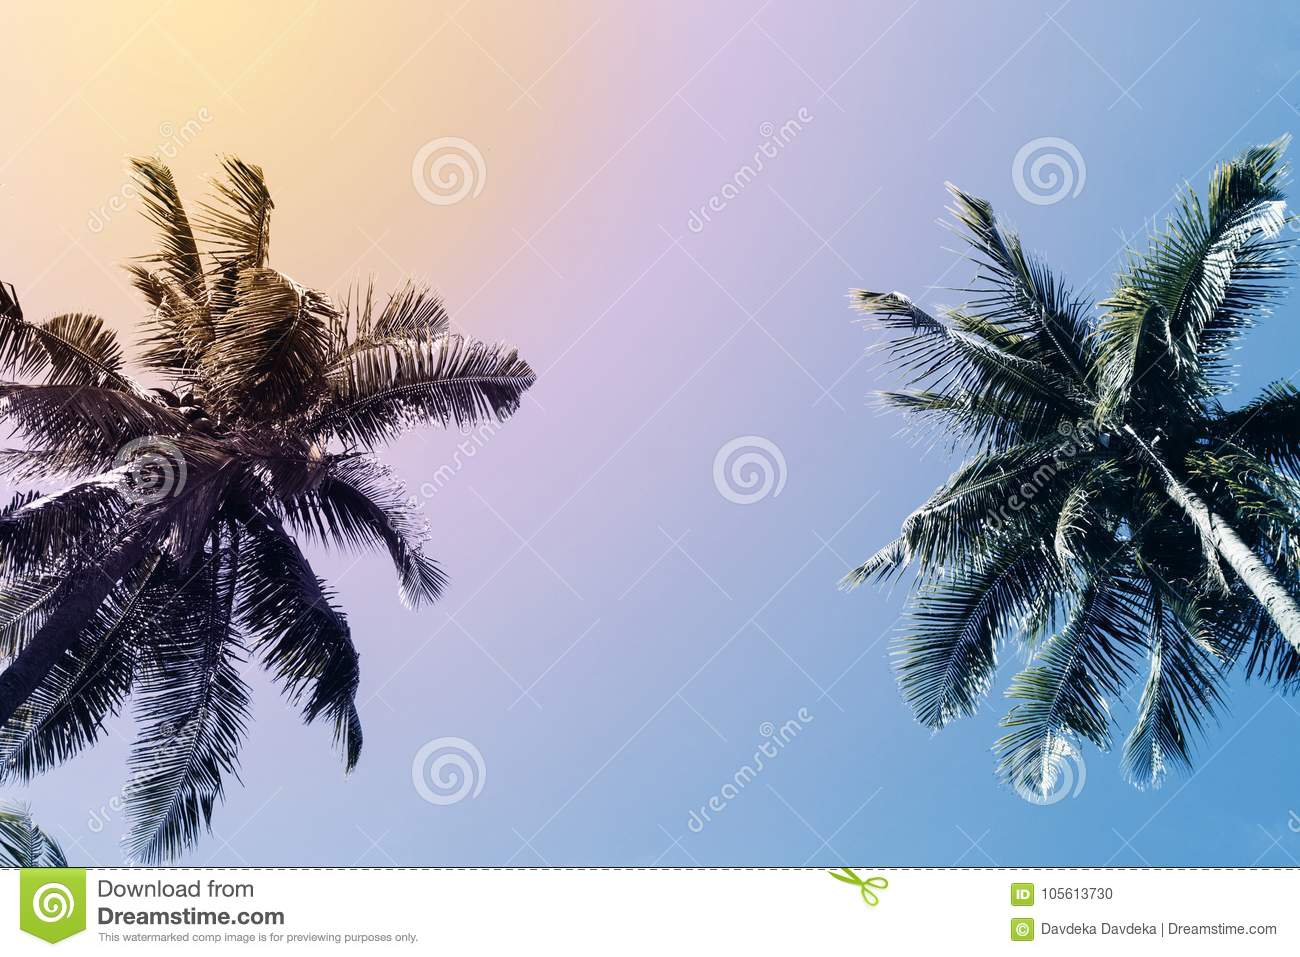 Green palm tree silhouette on sunset sky background. Coco palm vintage toned photo.